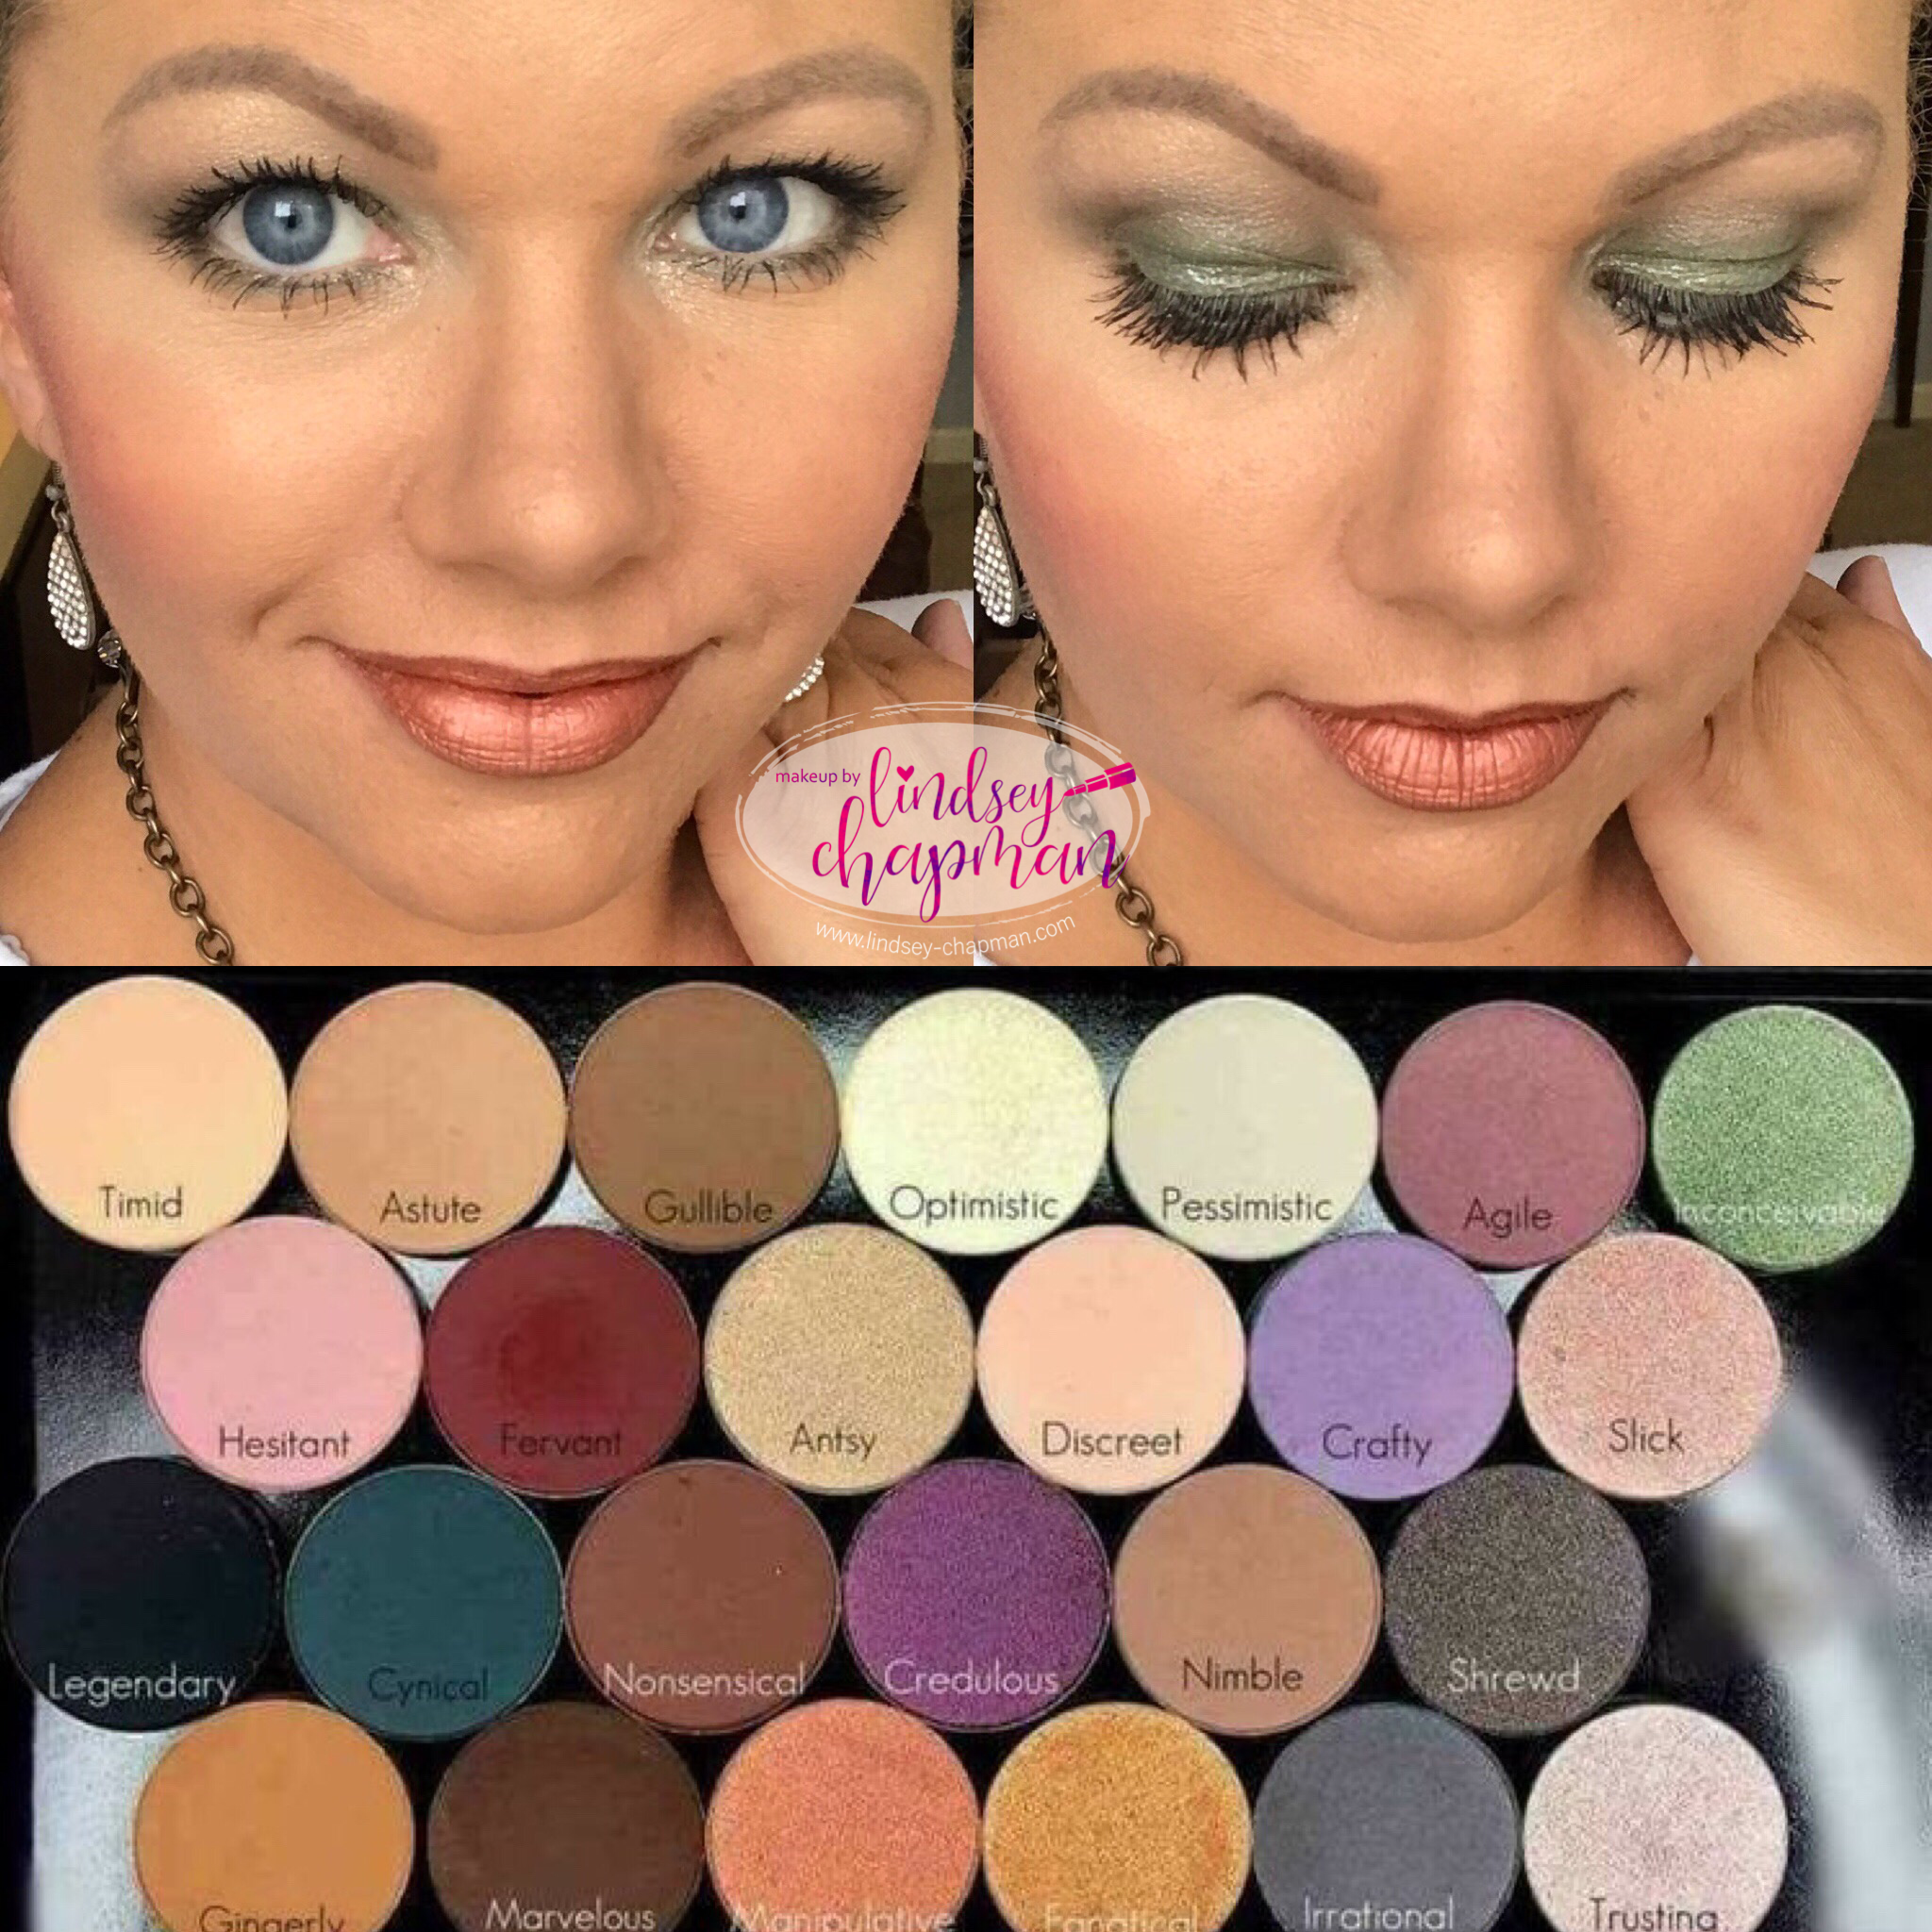 Younique pressed shadows customize your palette💗 (With